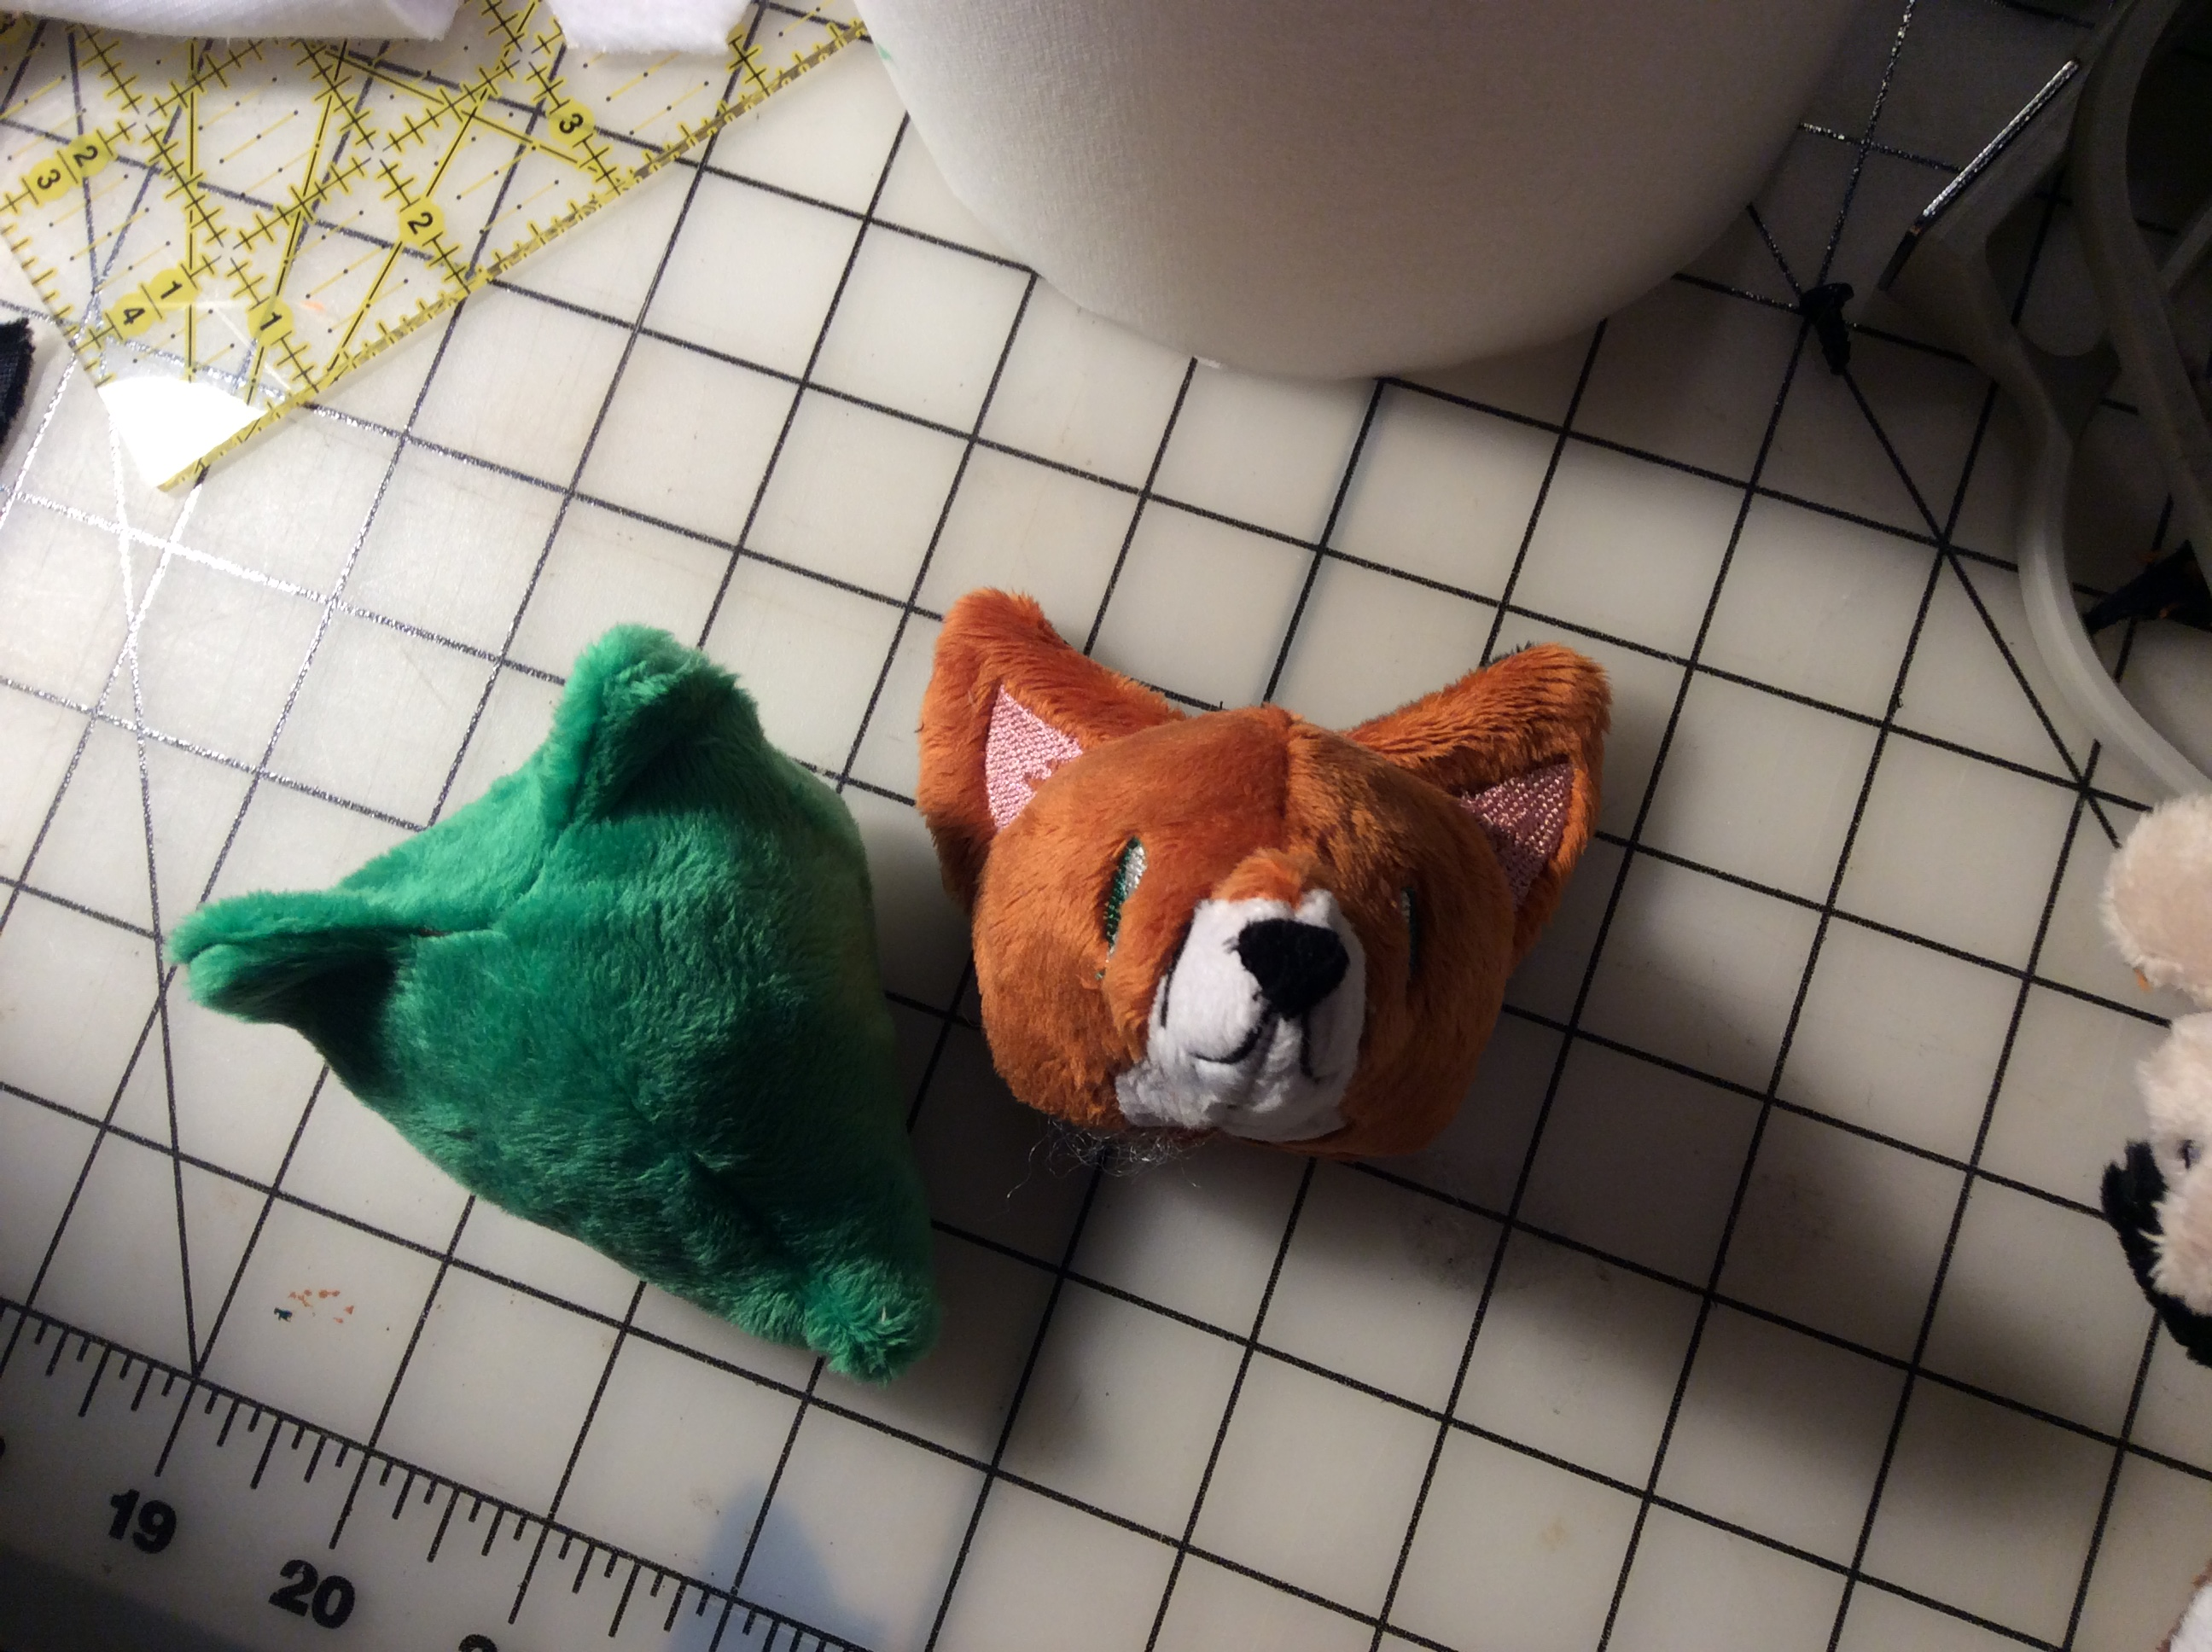 A different angle on the fox head.